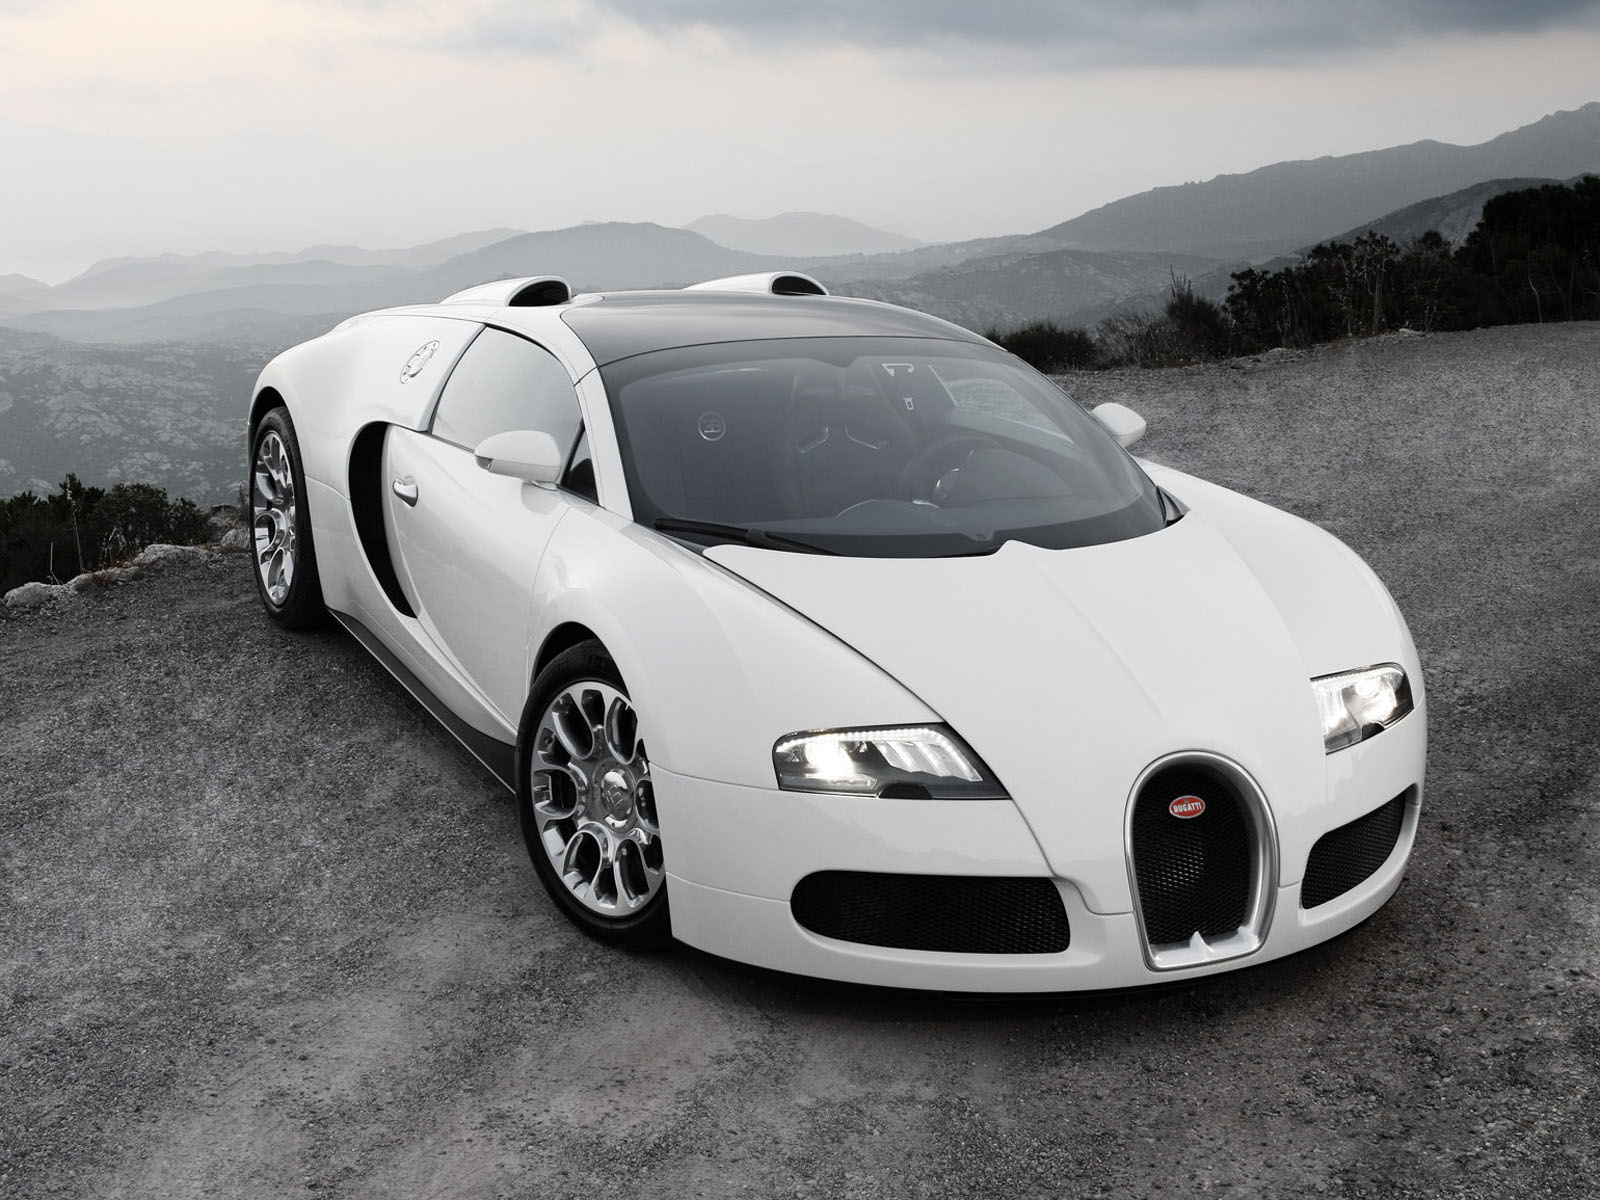 Bugatti veyron wallpaper cool car wallpapers - Bugatti veyron photos wallpapers ...